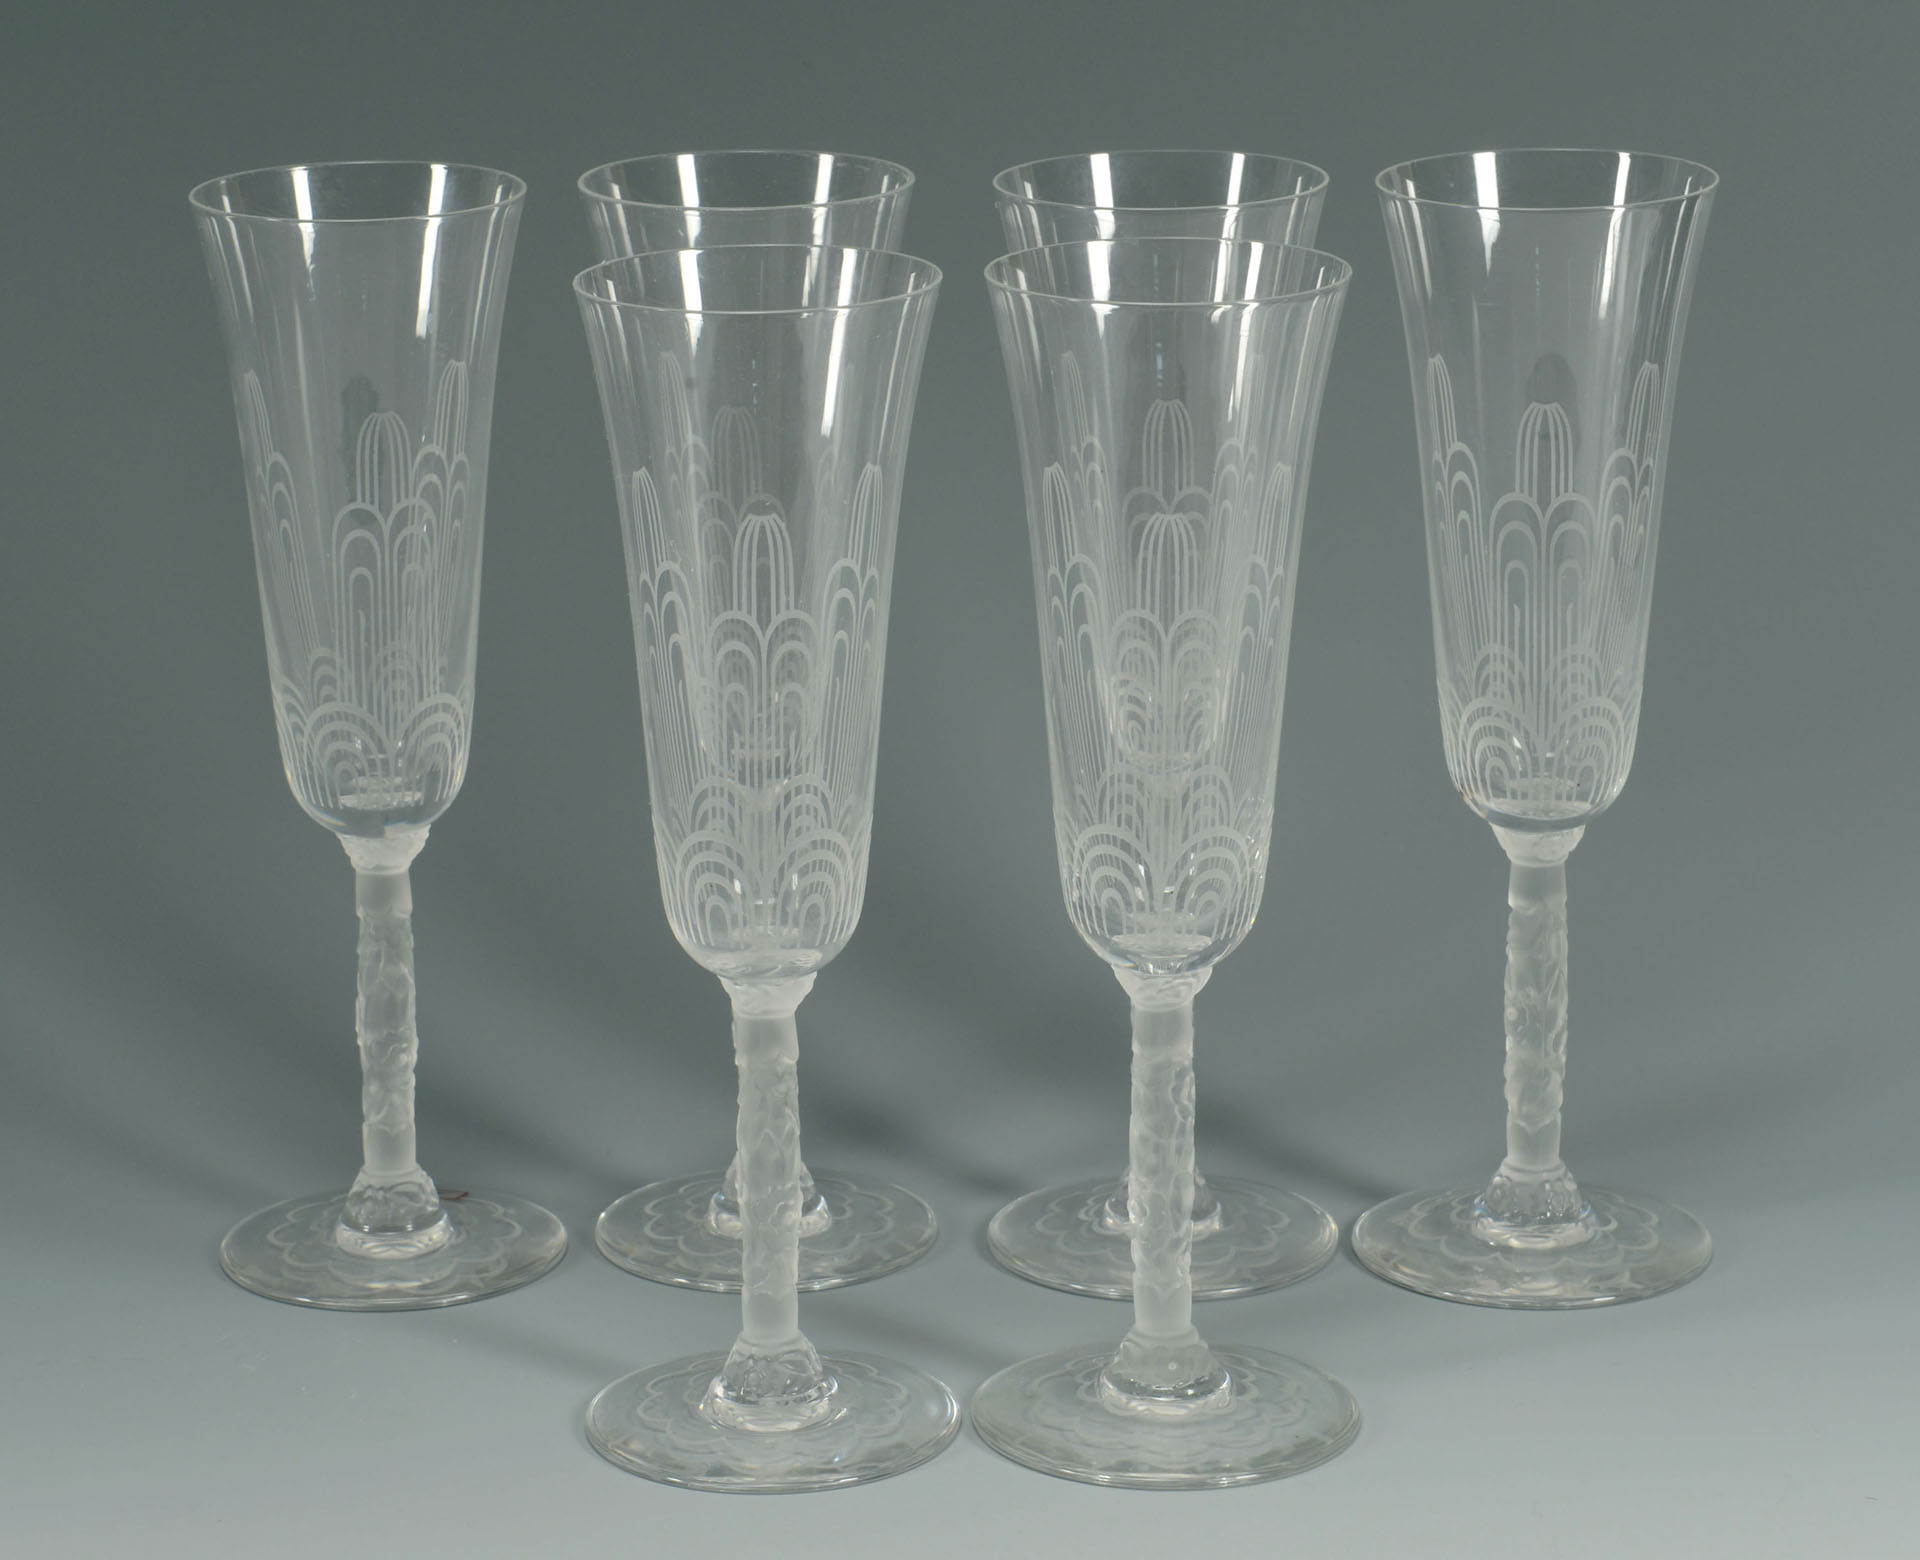 Baccarat crystal champagne glasses zynga poker ranks list